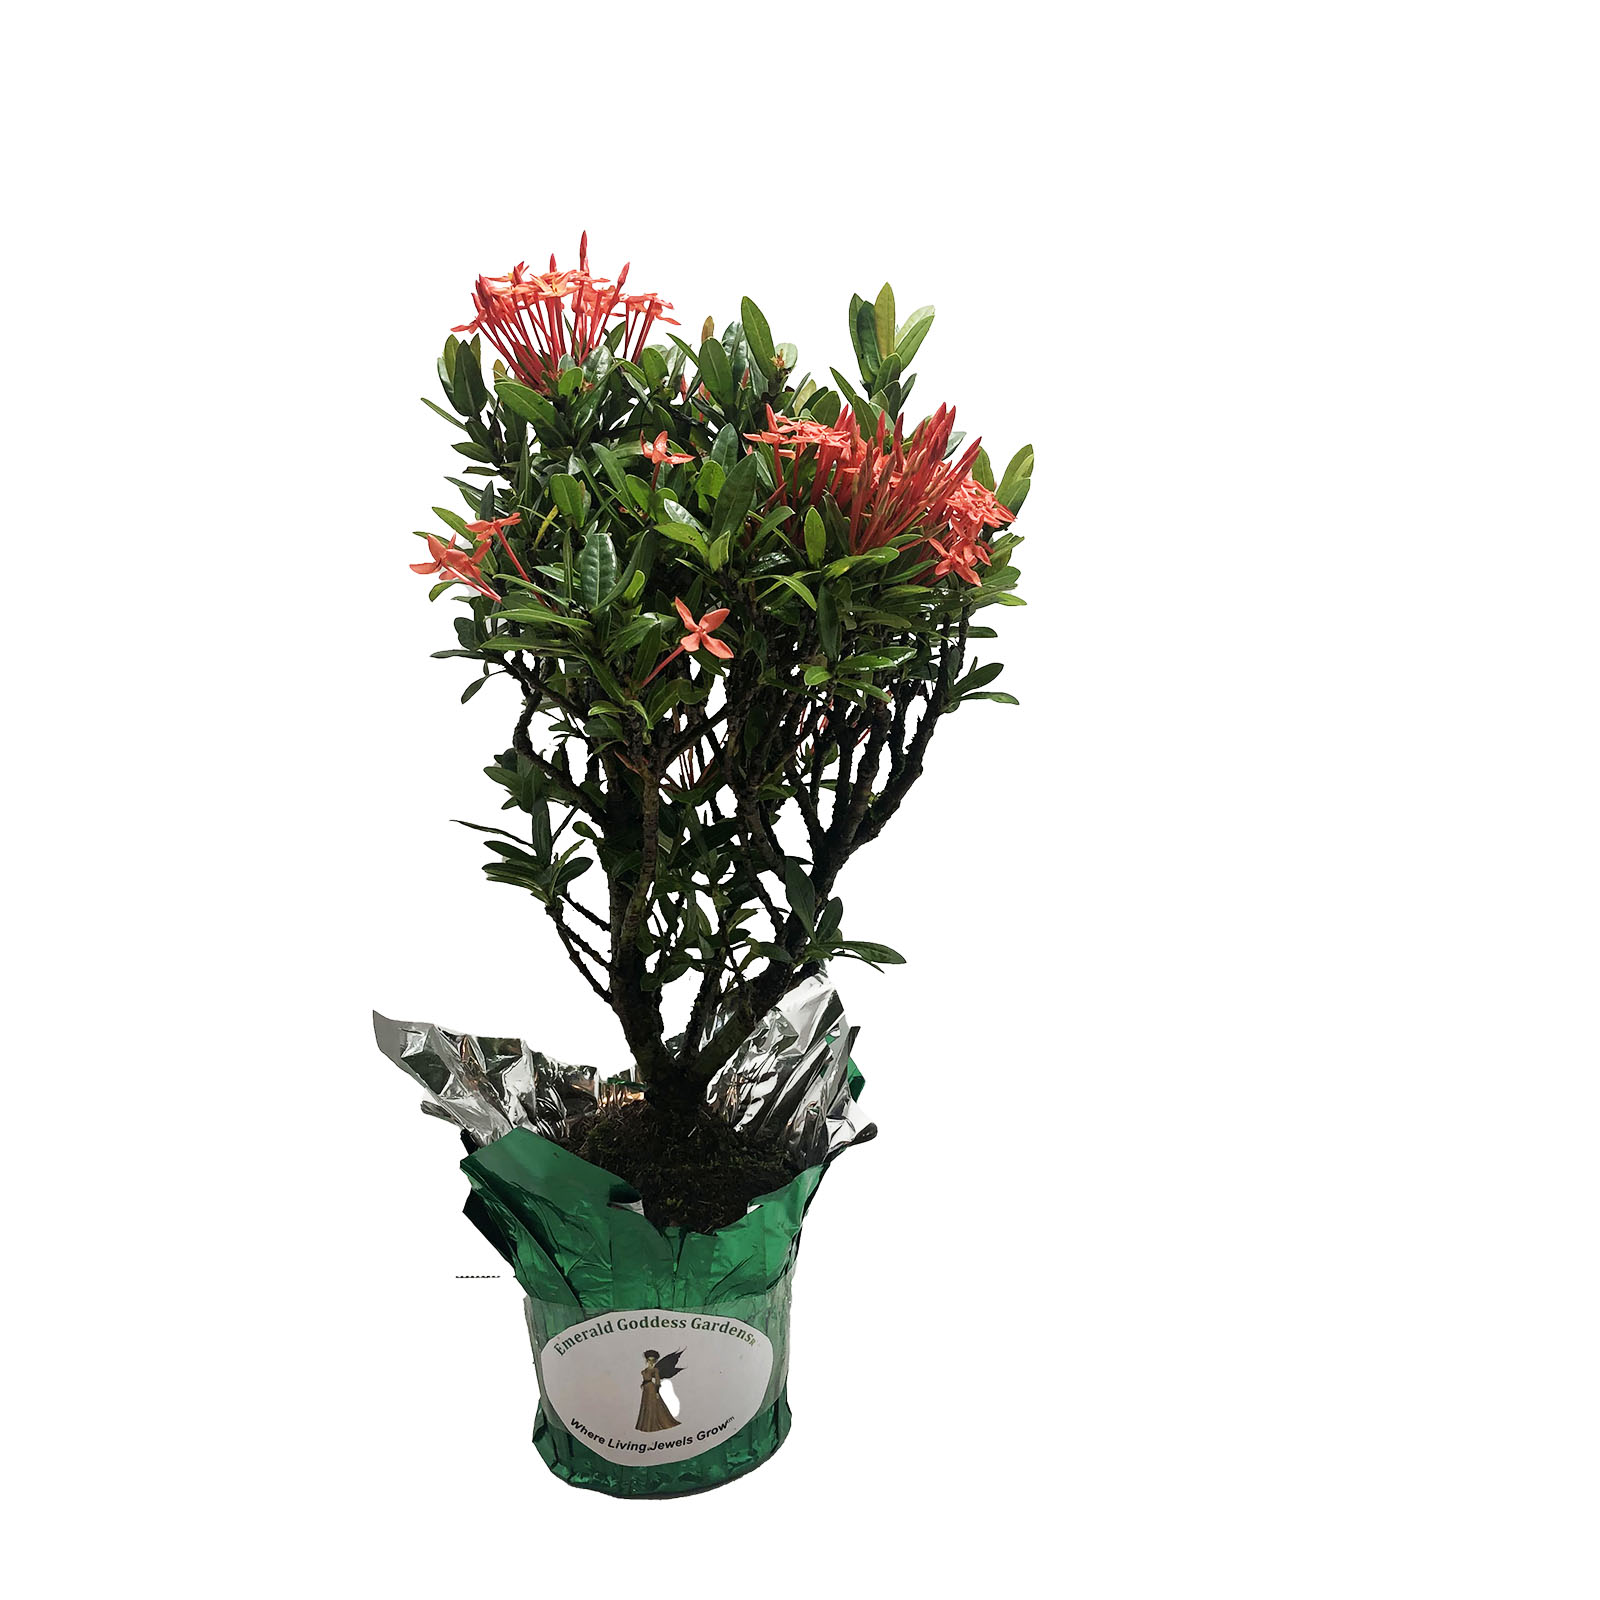 DWARF RED IXORA Large Mature Tropical Live Plant Taiwanensis Orange Tone Scarlet Flower Bonsai Starter Size 4 Inch Pot (1) Emerald R - Click Image to Close